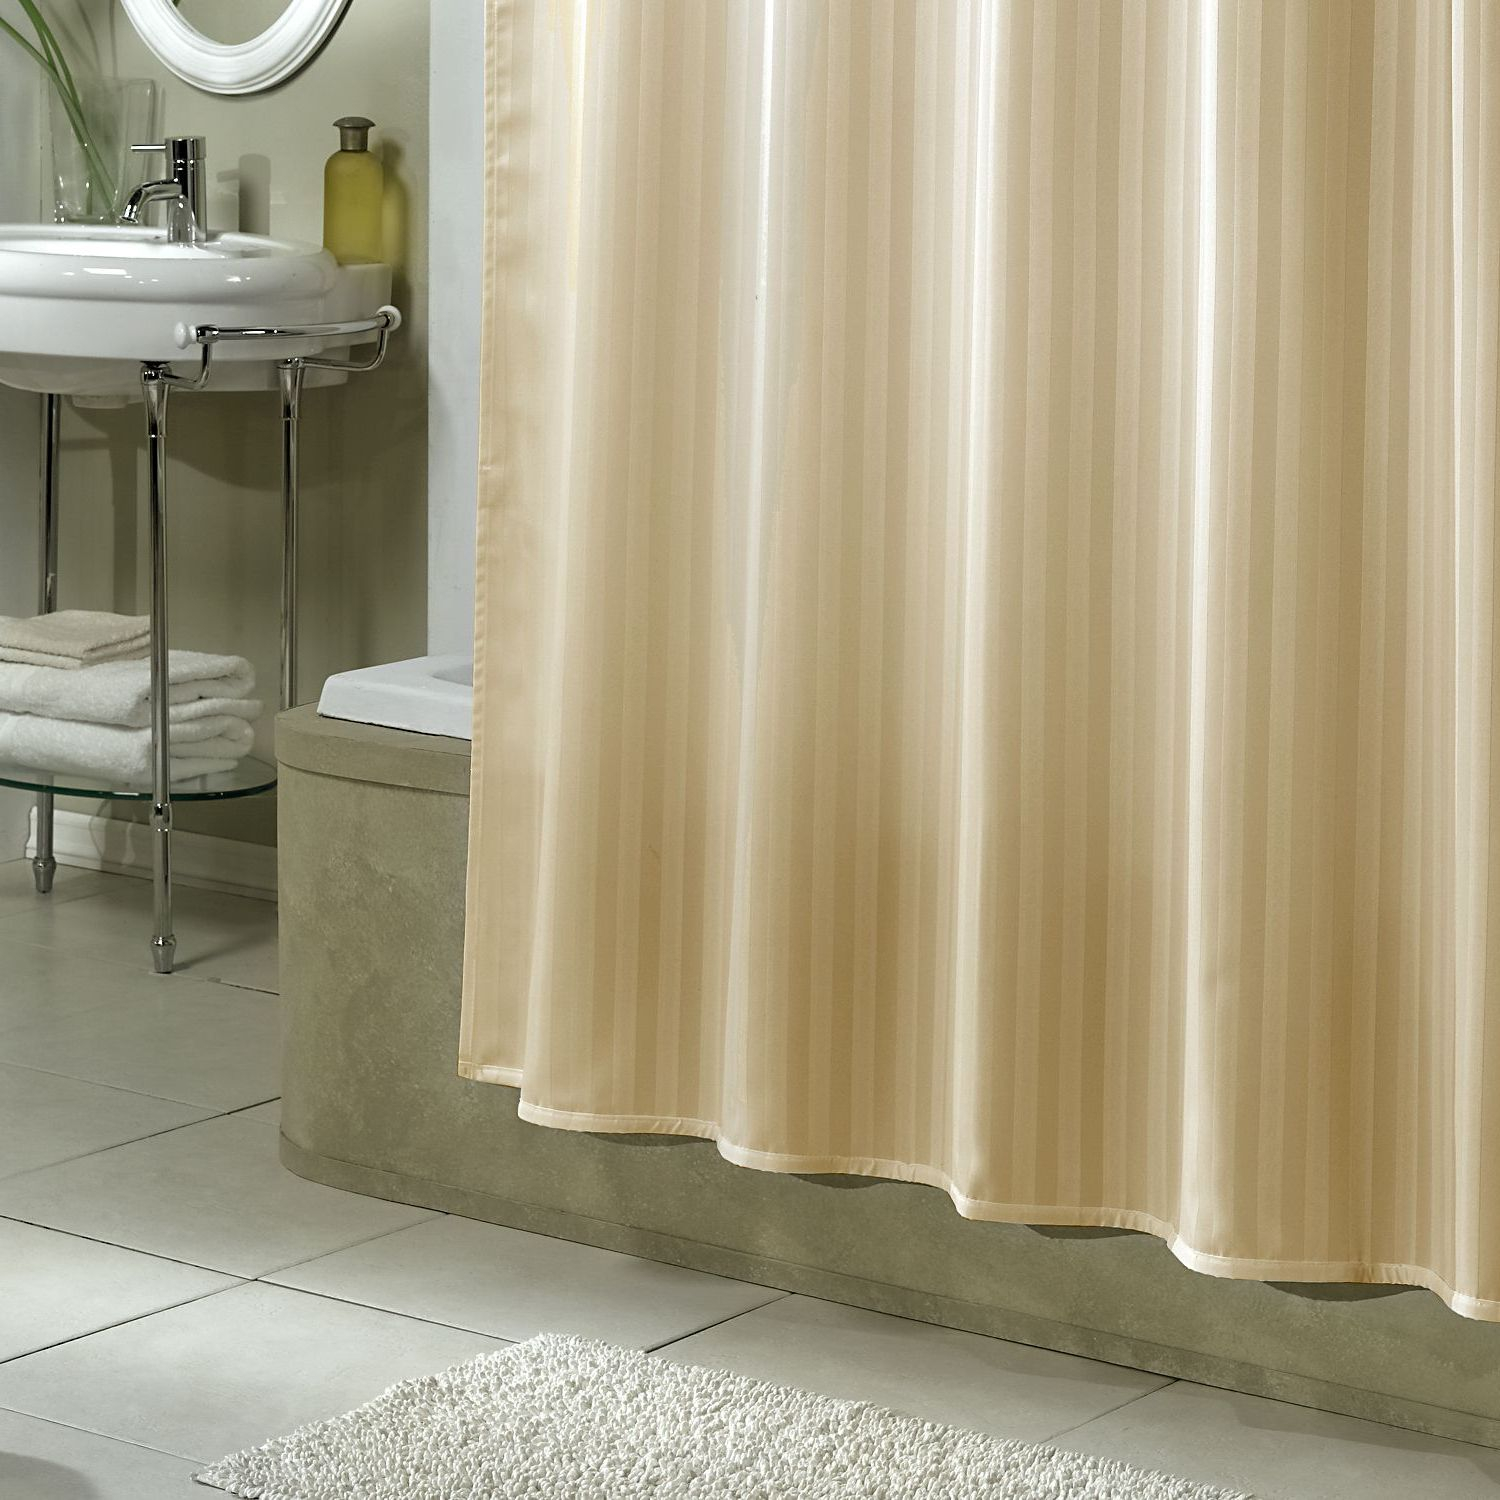 Elegant Fabric Shower Curtains With Valance Gray Floor White Brick regarding measurements 1500 X 1500